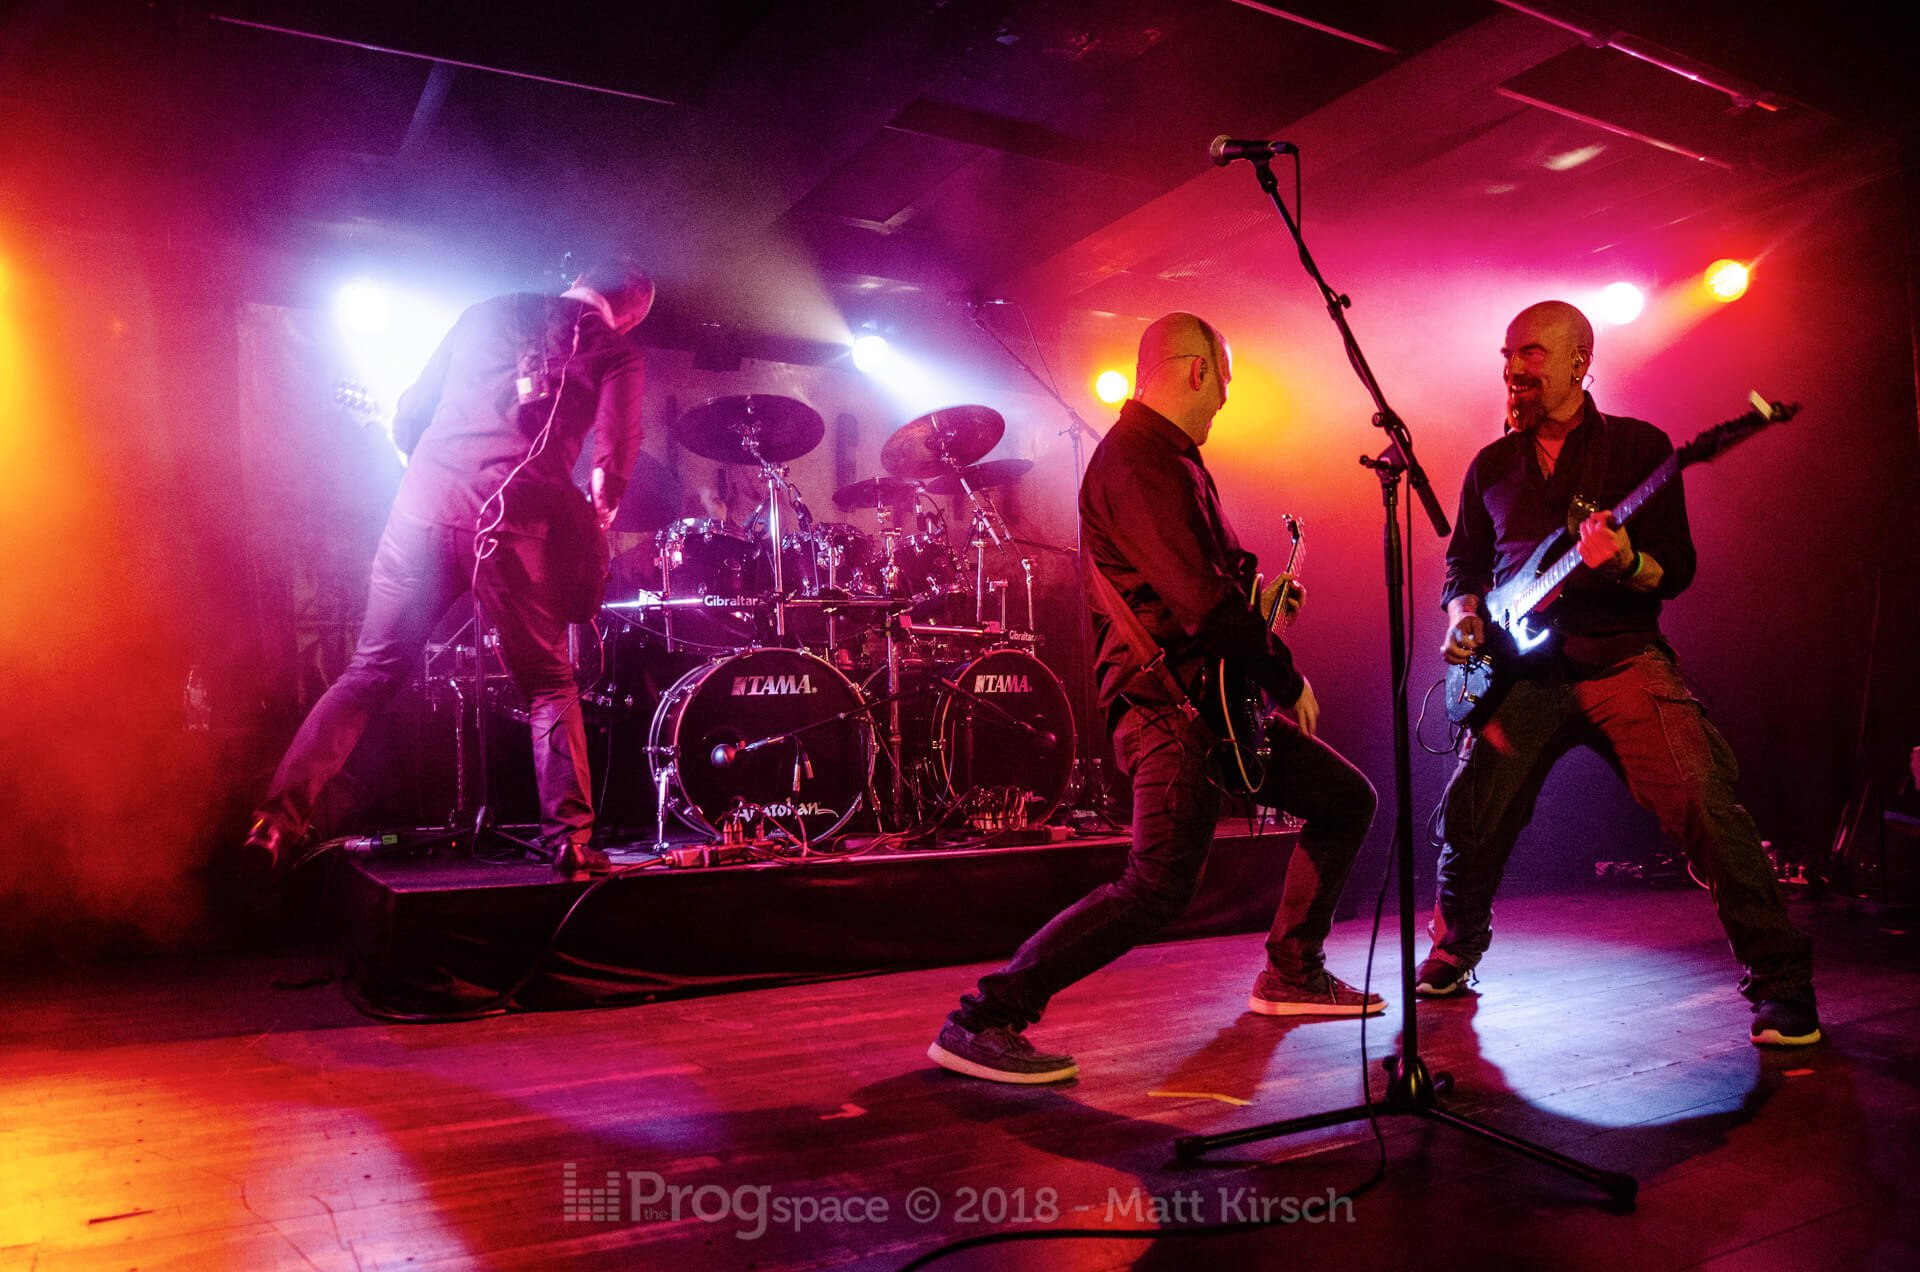 Anubis Gate live in Odense, 28 April 2018